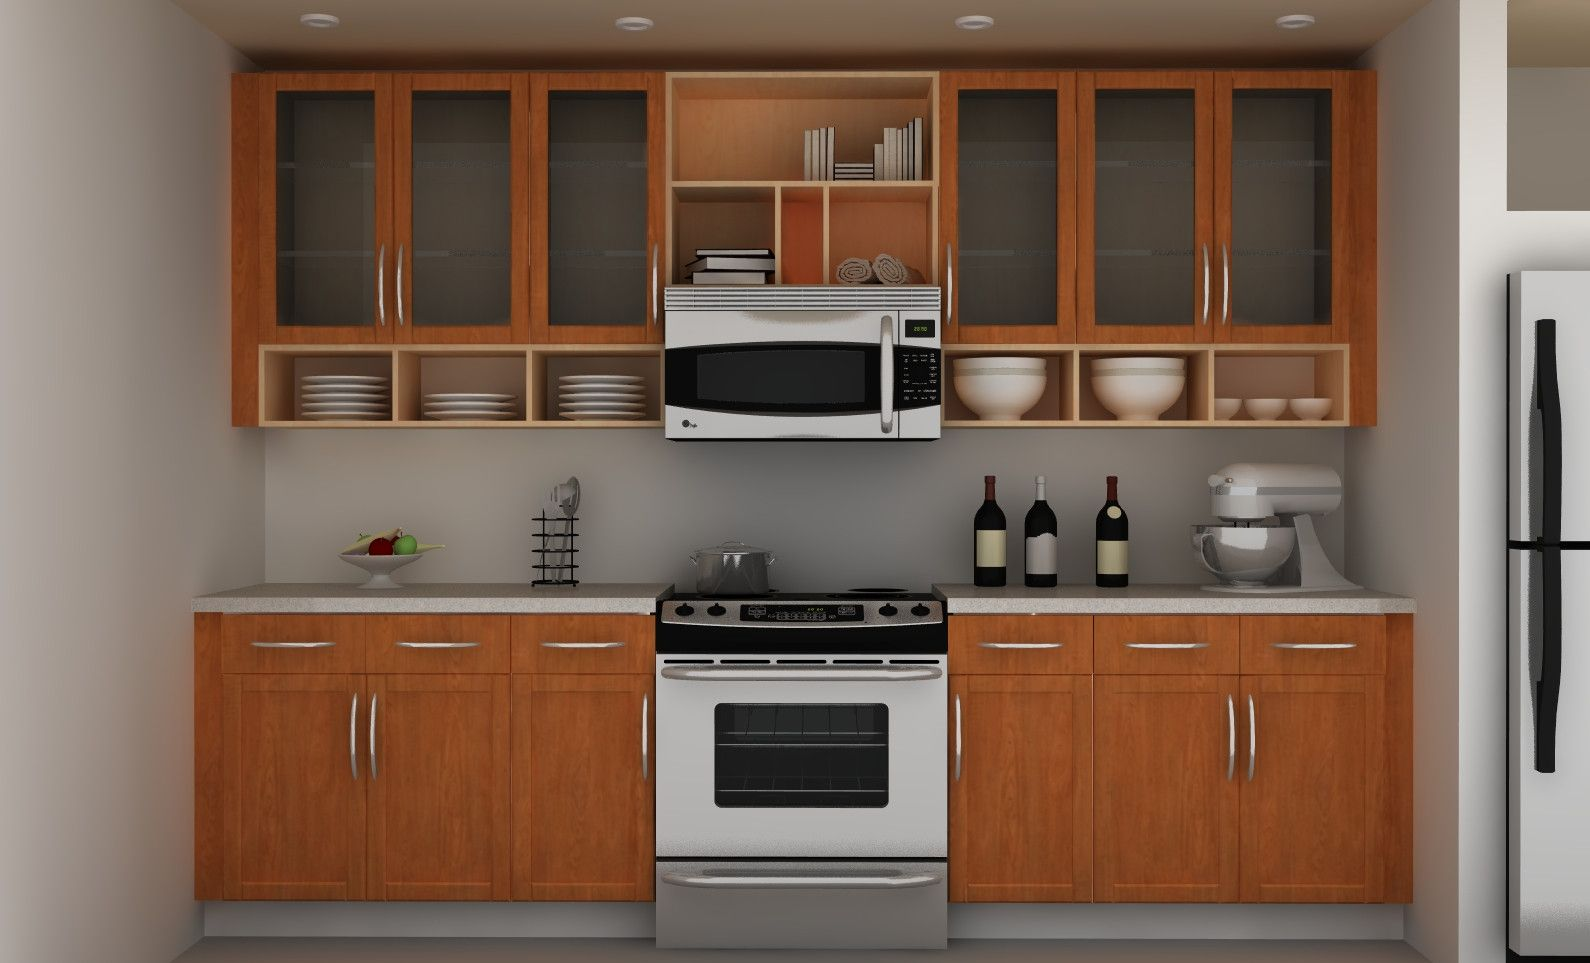 77 Hanging Kitchen Wall Cabinets Kitchen Design And Layout Ideas Check More At Http Ww Simple Kitchen Cabinets Wooden Kitchen Cabinets Diy Kitchen Remodel